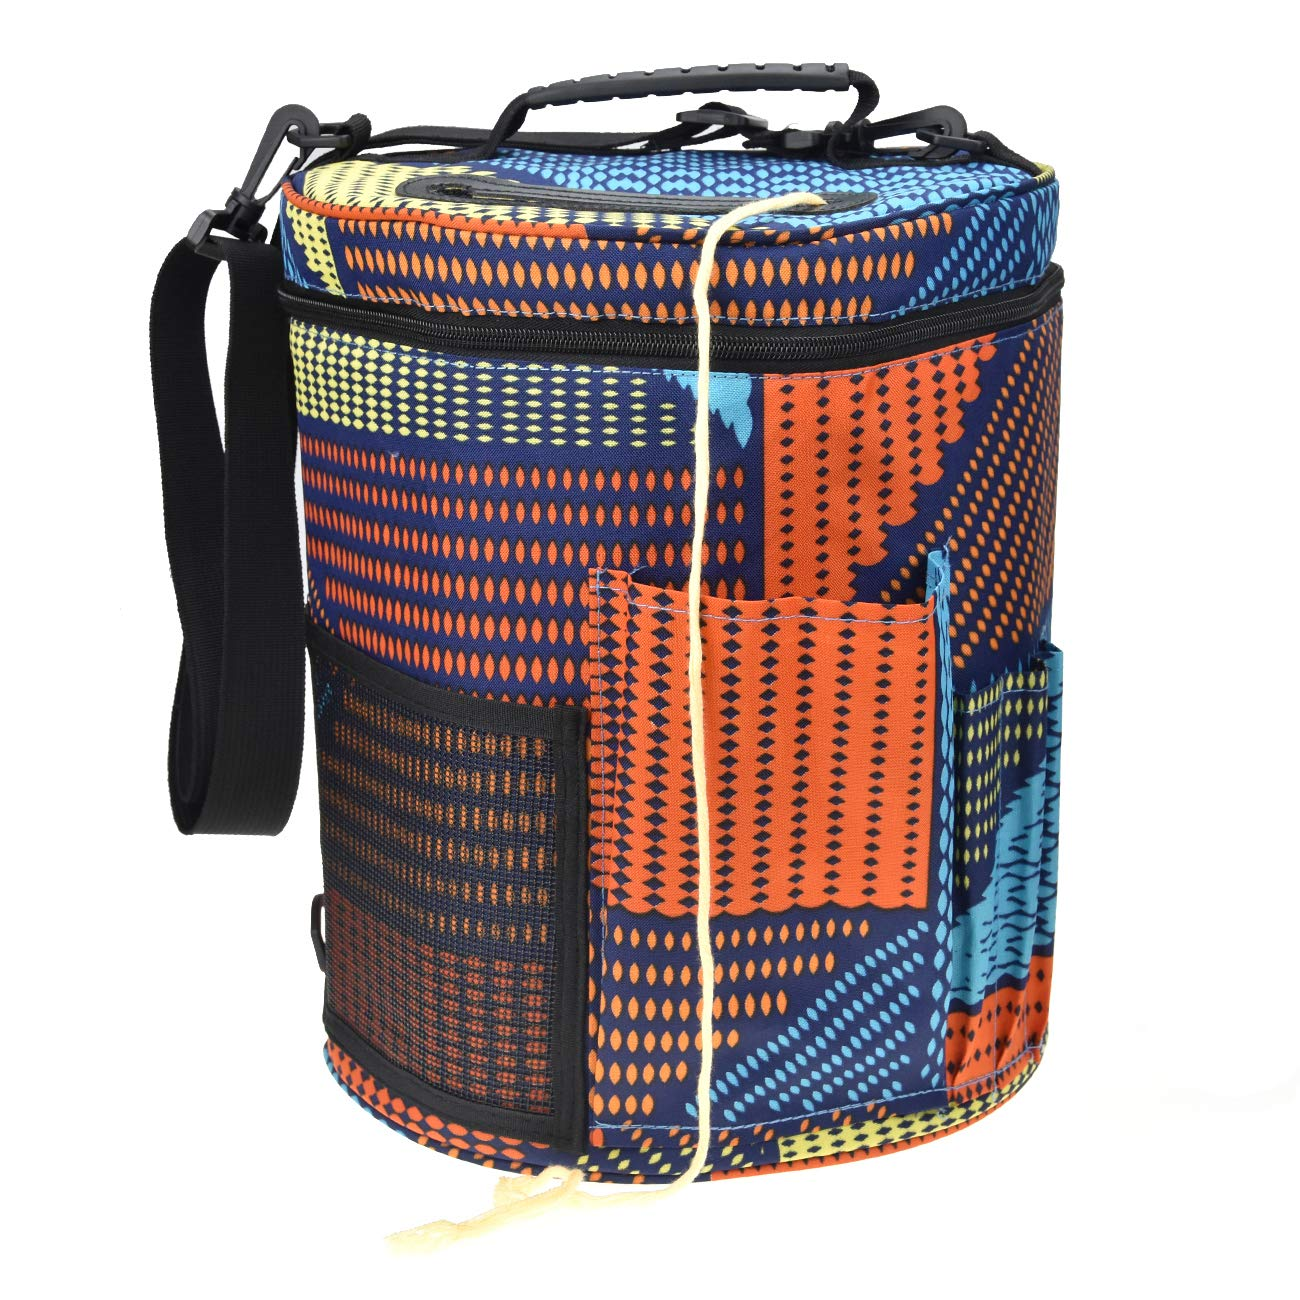 Large Capacity/Portable/Lightweight Yarn Storage Knitting Tote Organizer Bag with Shoulder Strap Handles Looen Yarn Containers W/Pockets for Crochet Hooks & Knitting Needles (Geometry, 12.7X10.8'')